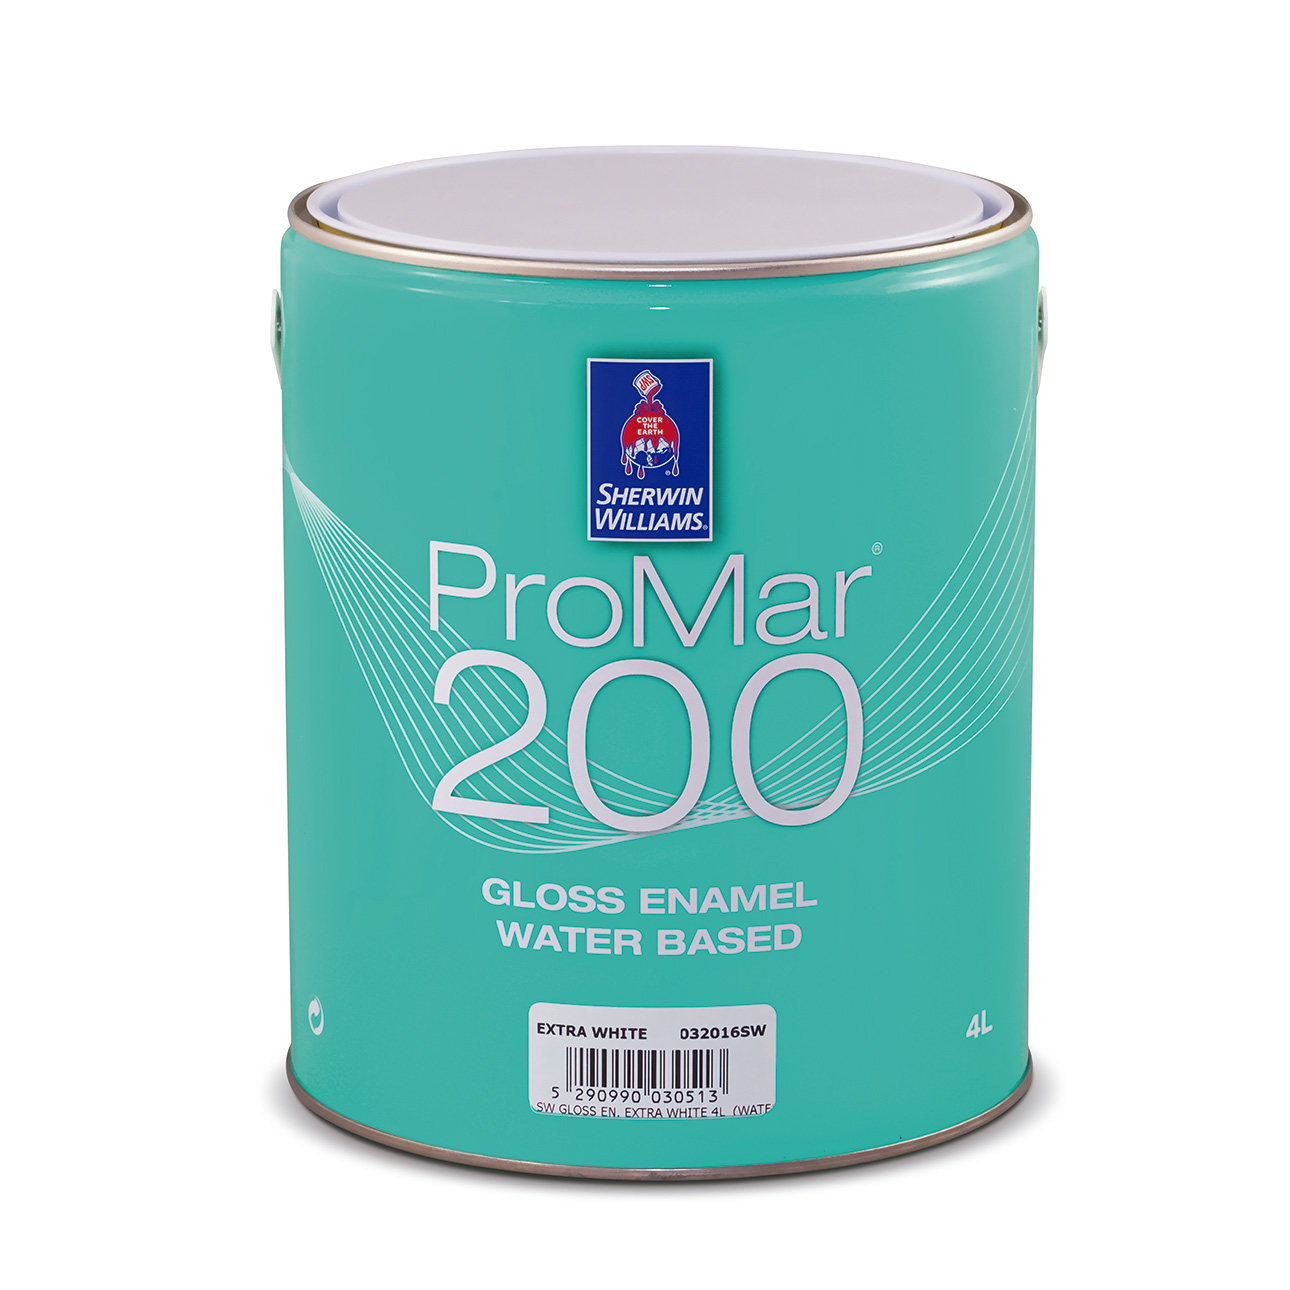 SHERWIN-WILLIAMS® PROMAR® 200 GLOSS ENAMEL WATER BASED EXTRA WHITE 1L